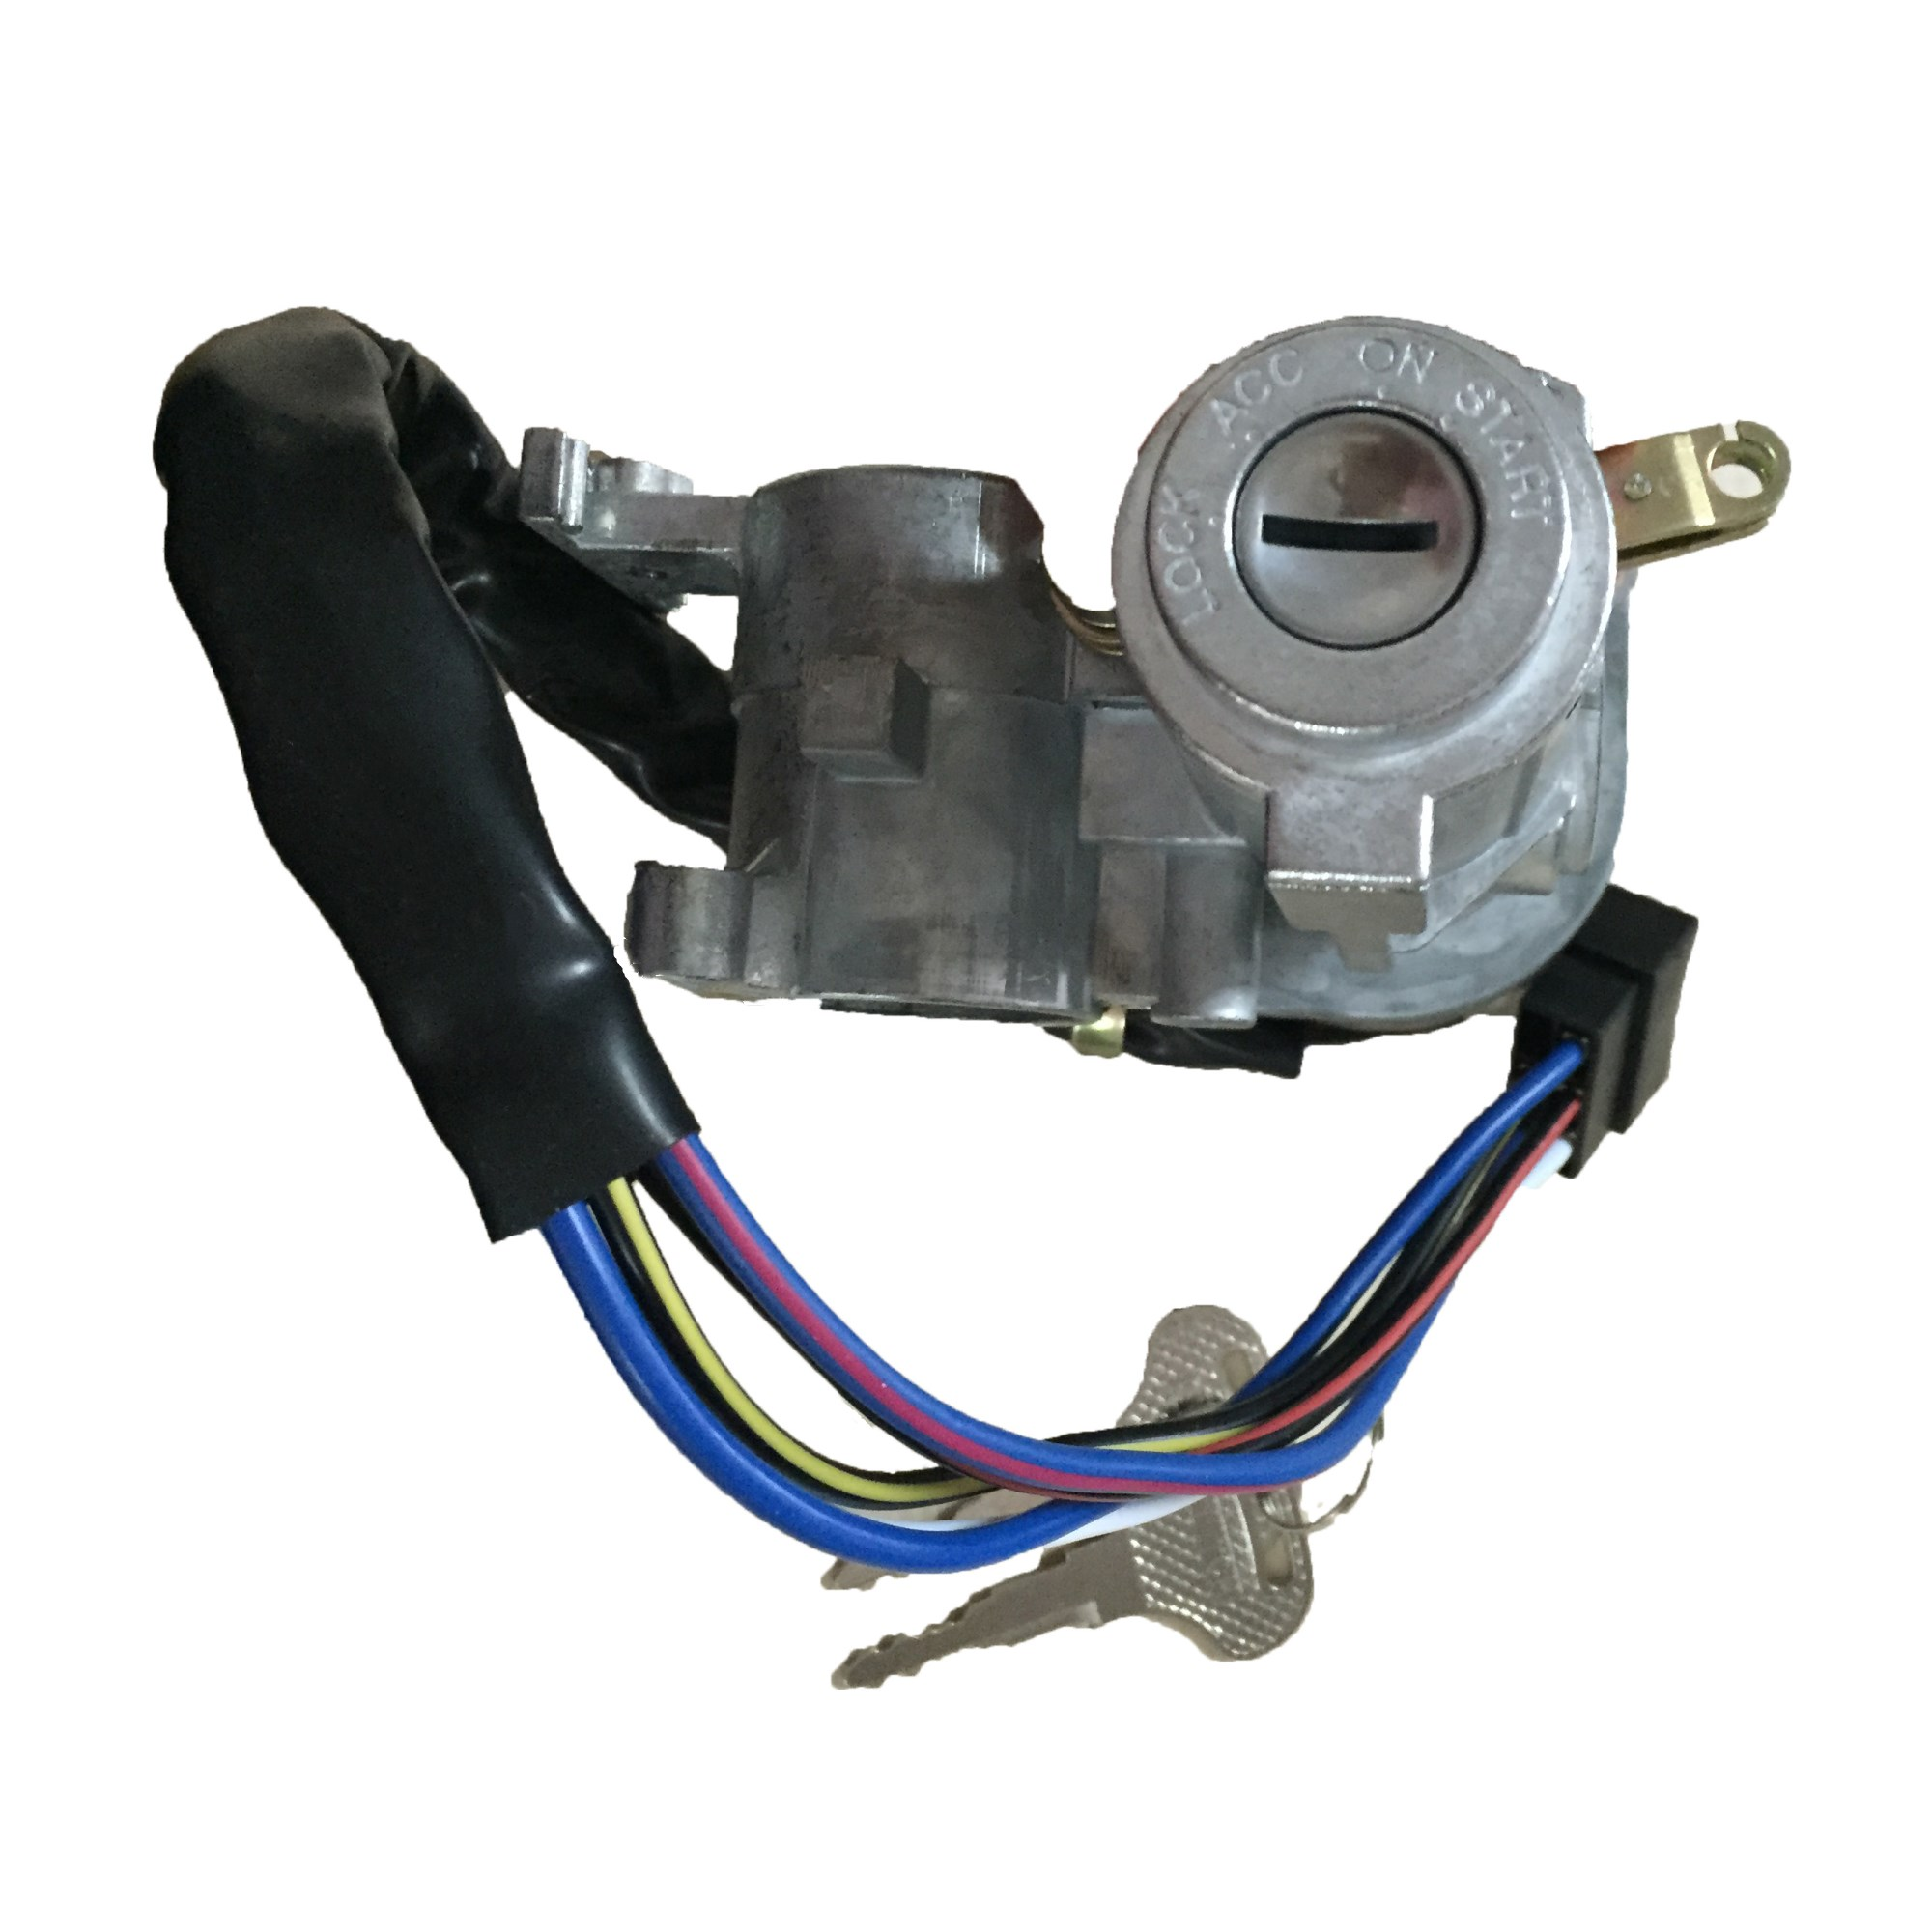 hight resolution of ignition starter switch for mitsubishi canter fe114 111 5p wire mb098733 in car switches relays from automobiles motorcycles on aliexpress com alibaba